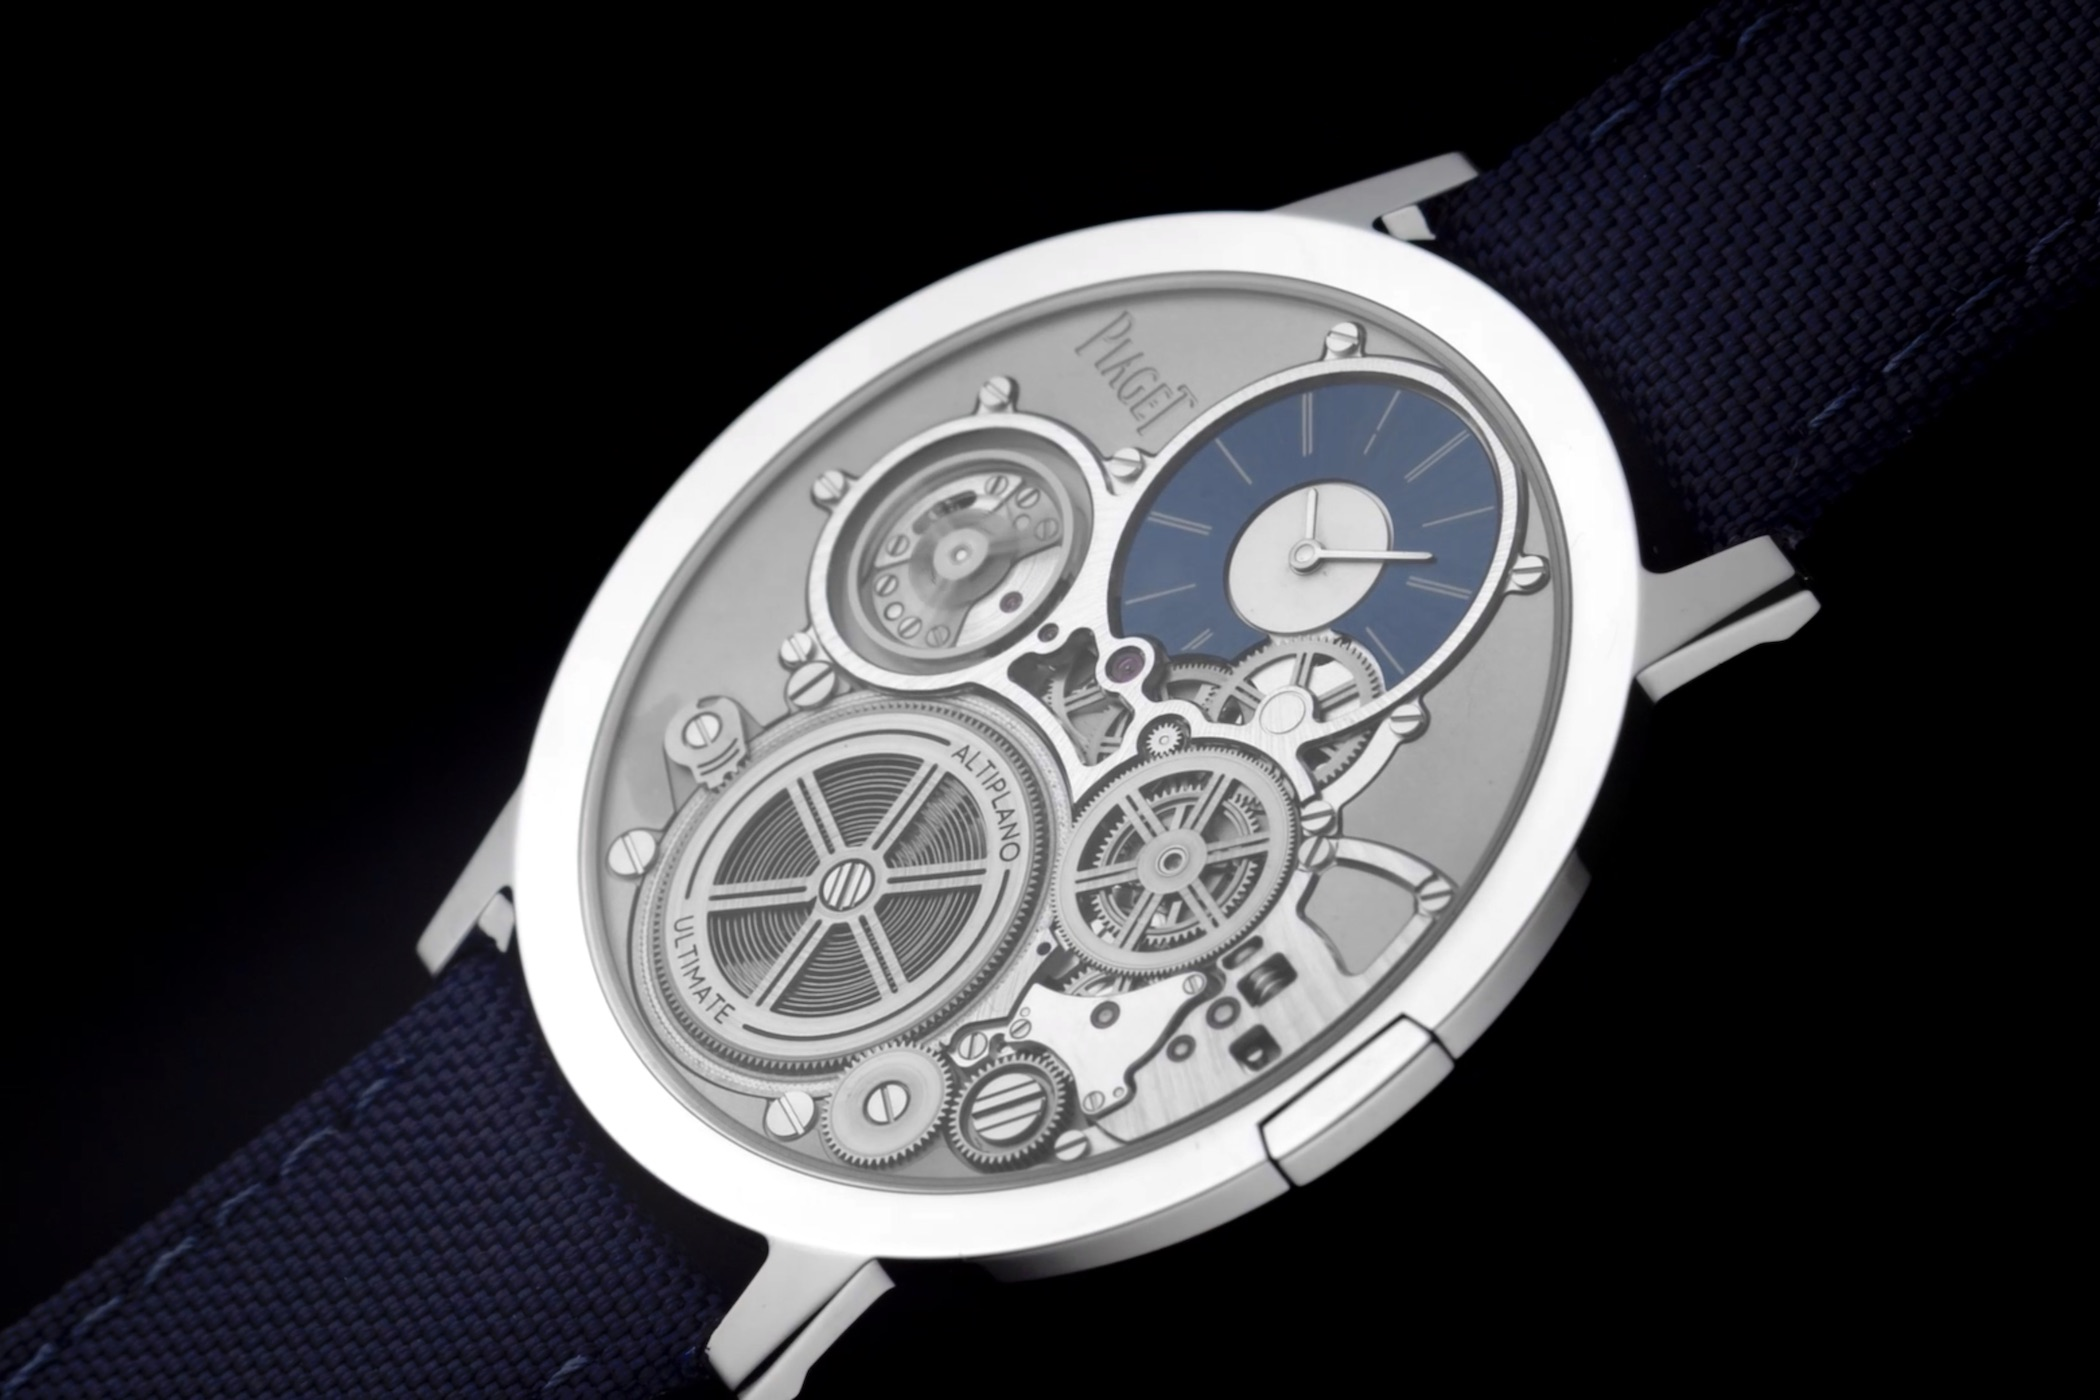 Piaget Altiplano Ultimate Concept GPHG 2020 Aiguille d'or